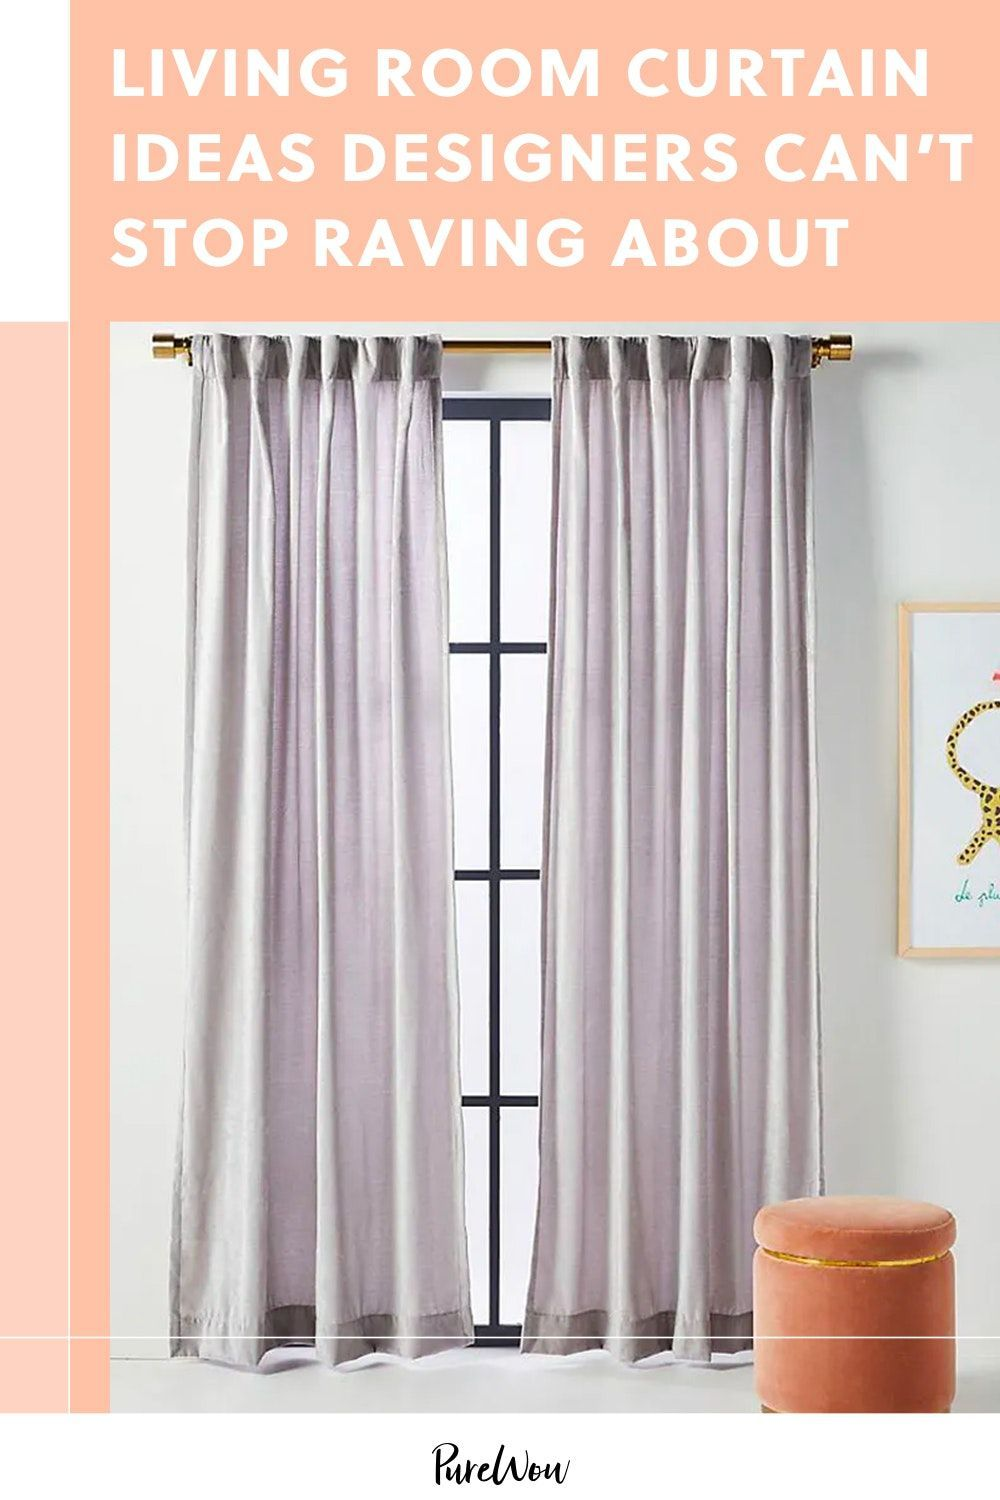 29 Living Room Curtain Ideas Designers Can T Stop Raving Abou